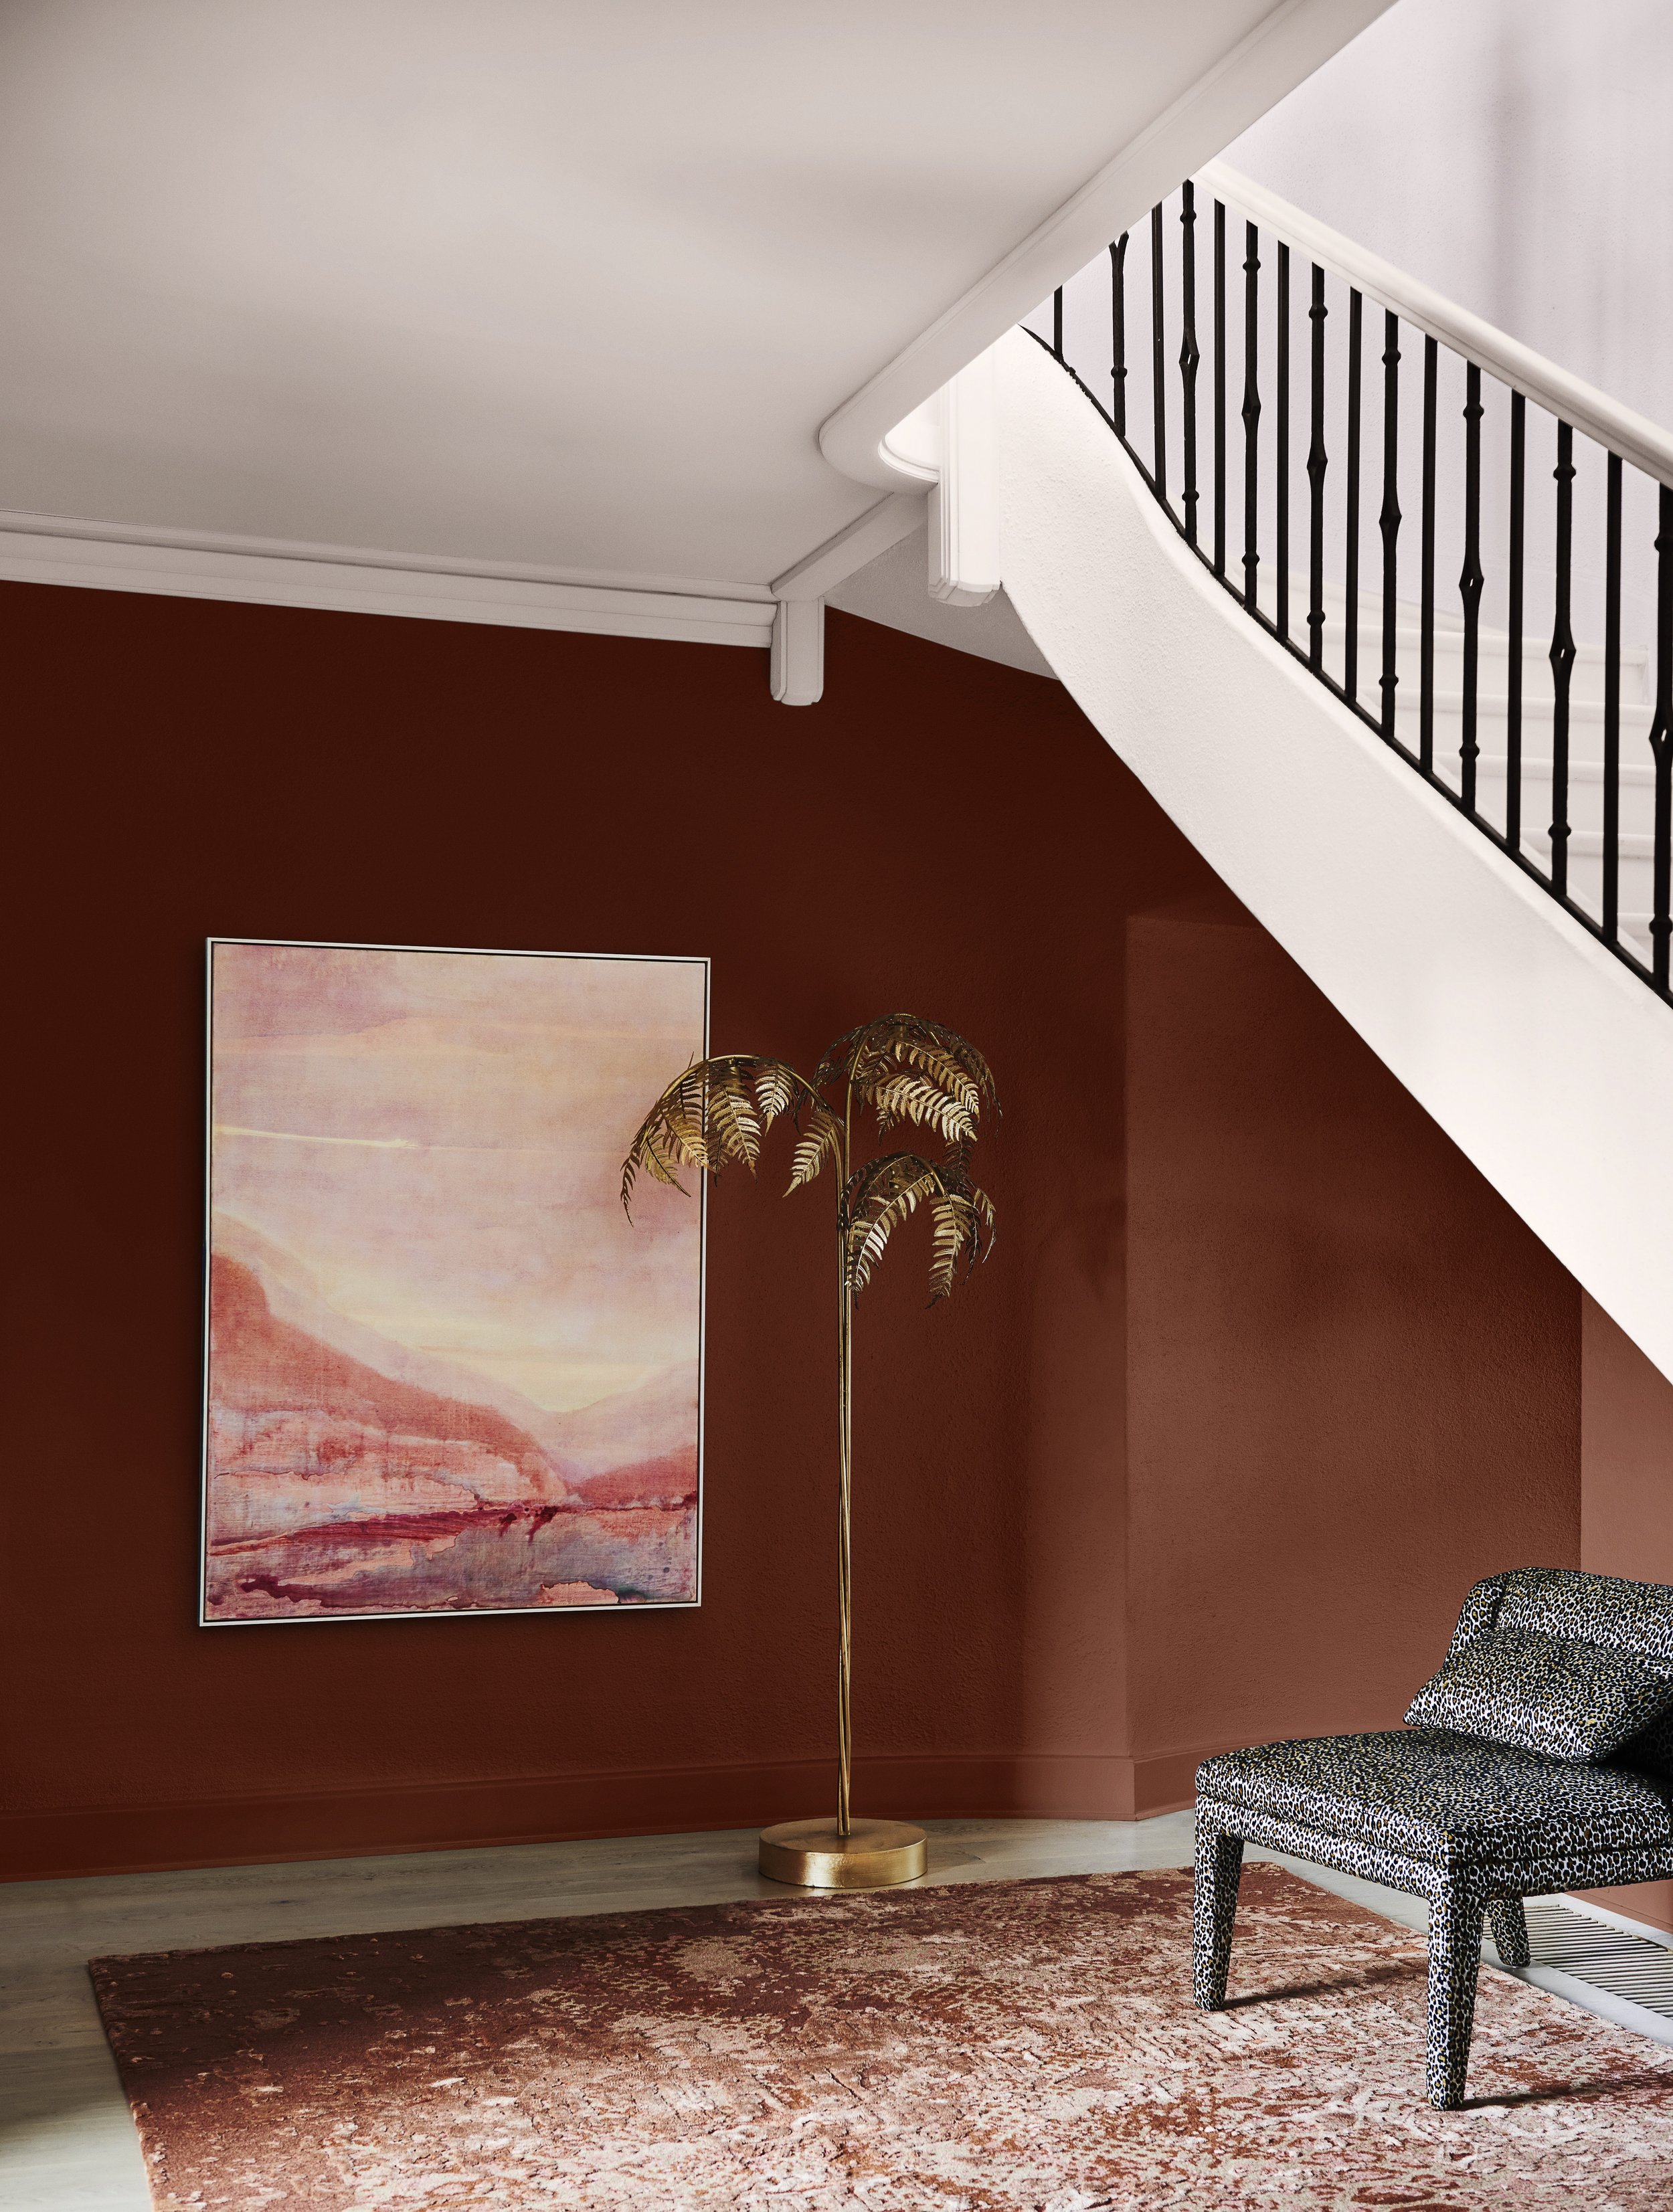 Dulux Colour Forecast 2020 – Indulge palette. Wall in Dulux Russet Tan.